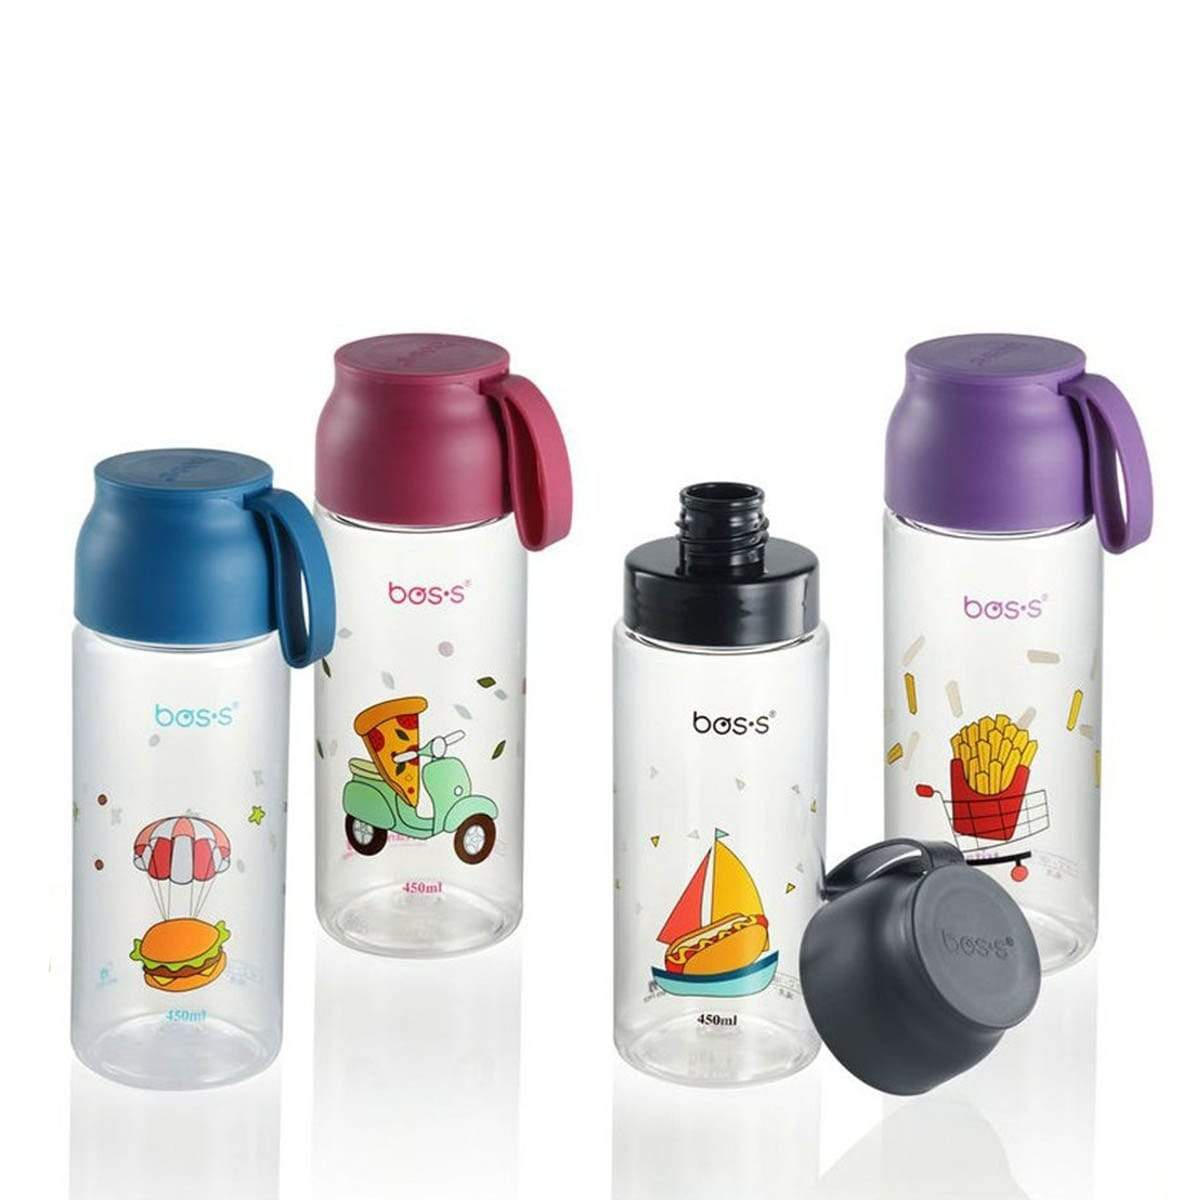 BSM055 550ml BOS'S Kids Tritan Bottle